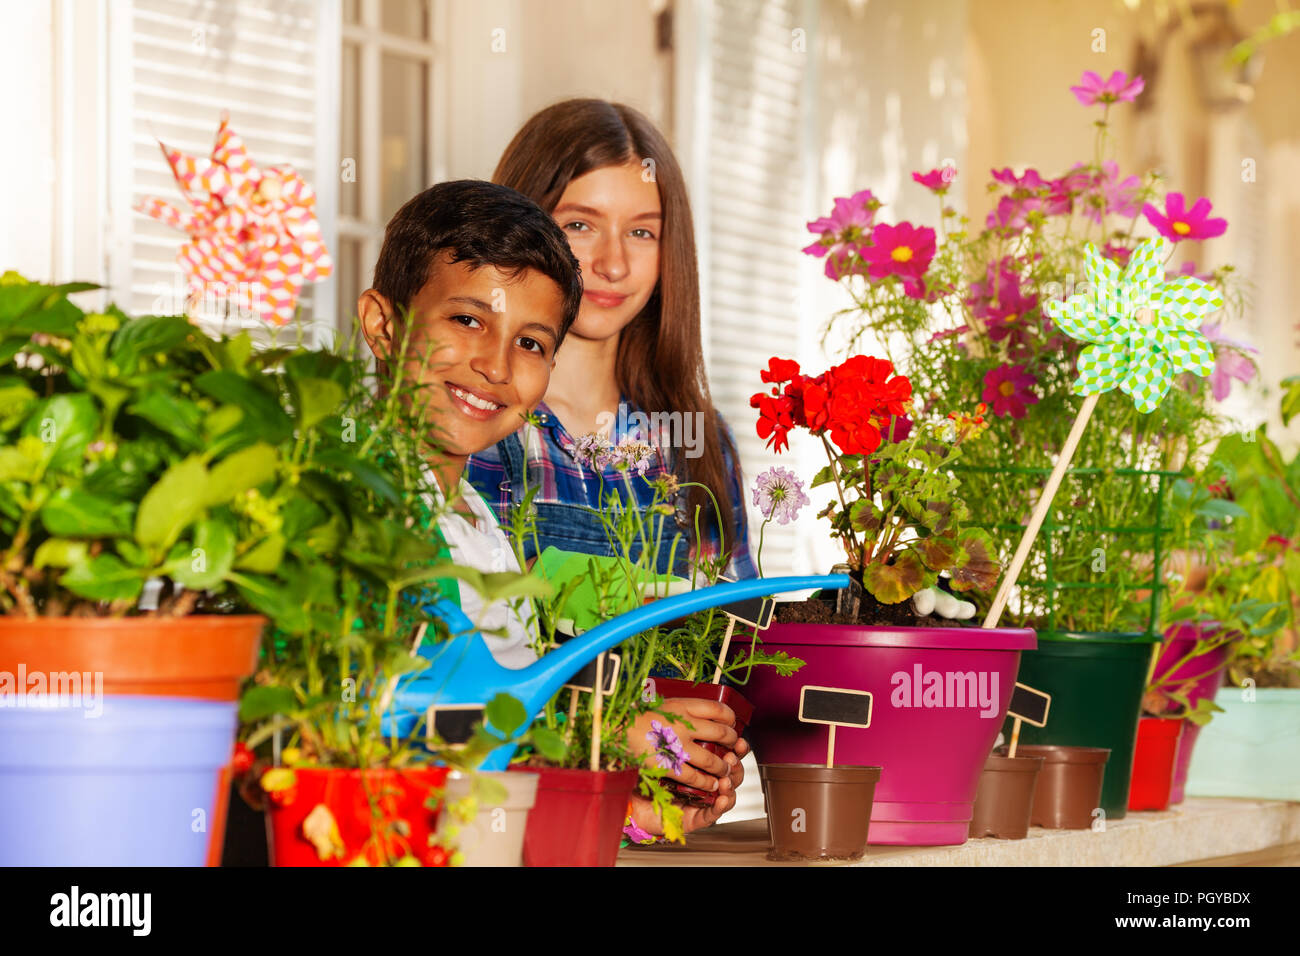 Portrait of preteen boy and girl watering potted flowers on balcony garden - Stock Image